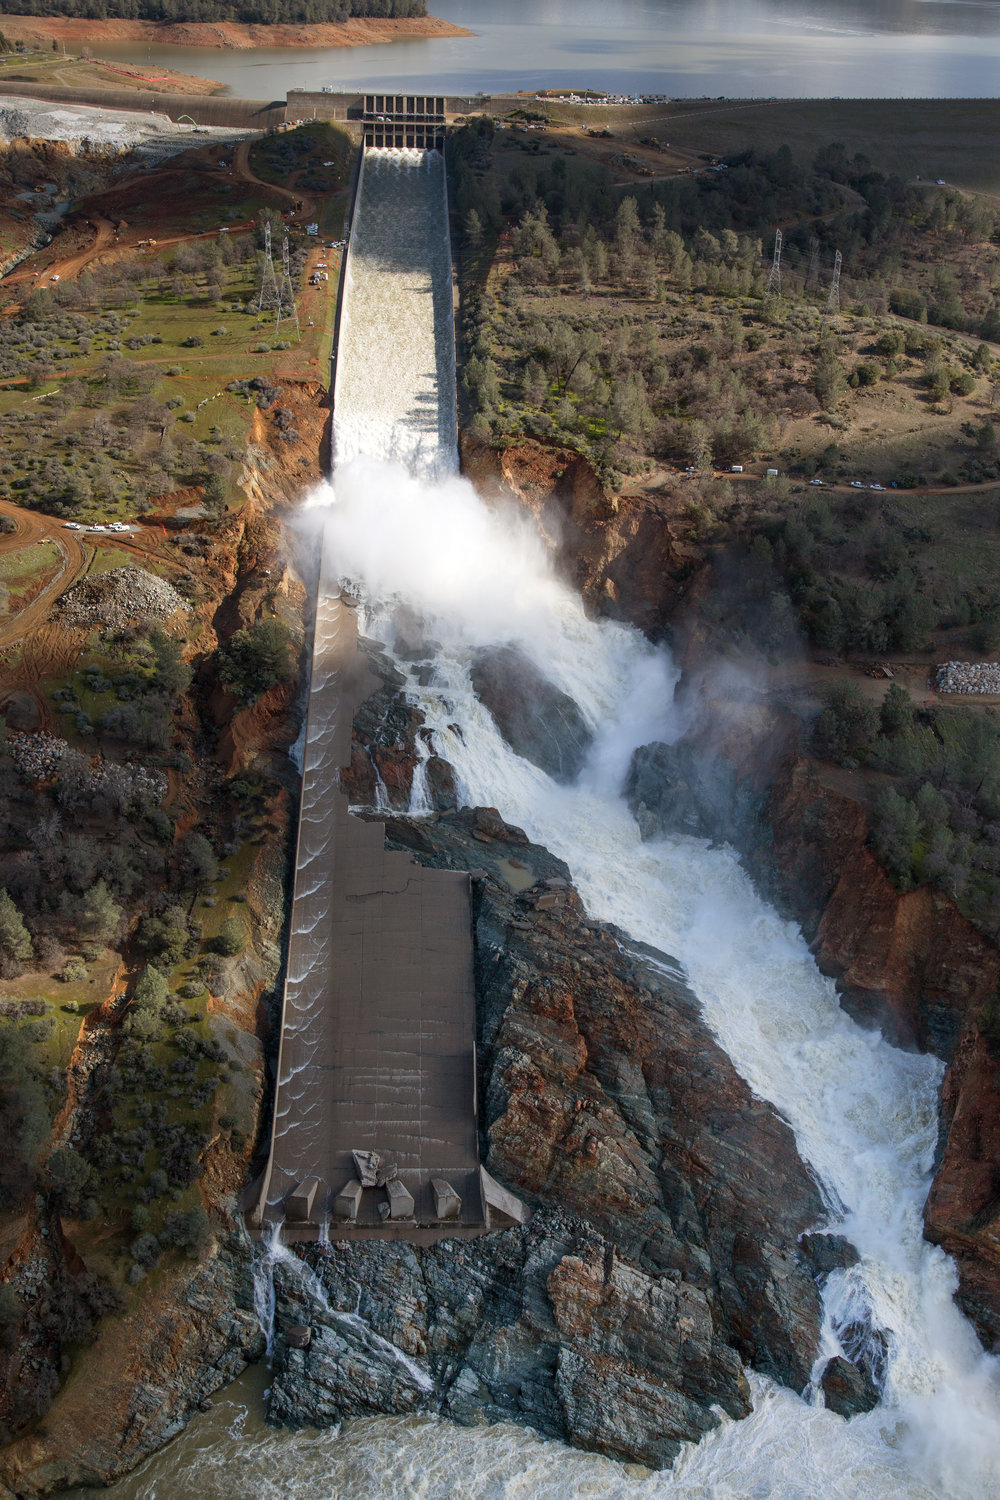 Oroville_Dam_spillway_damage_February_27_2017.jpg